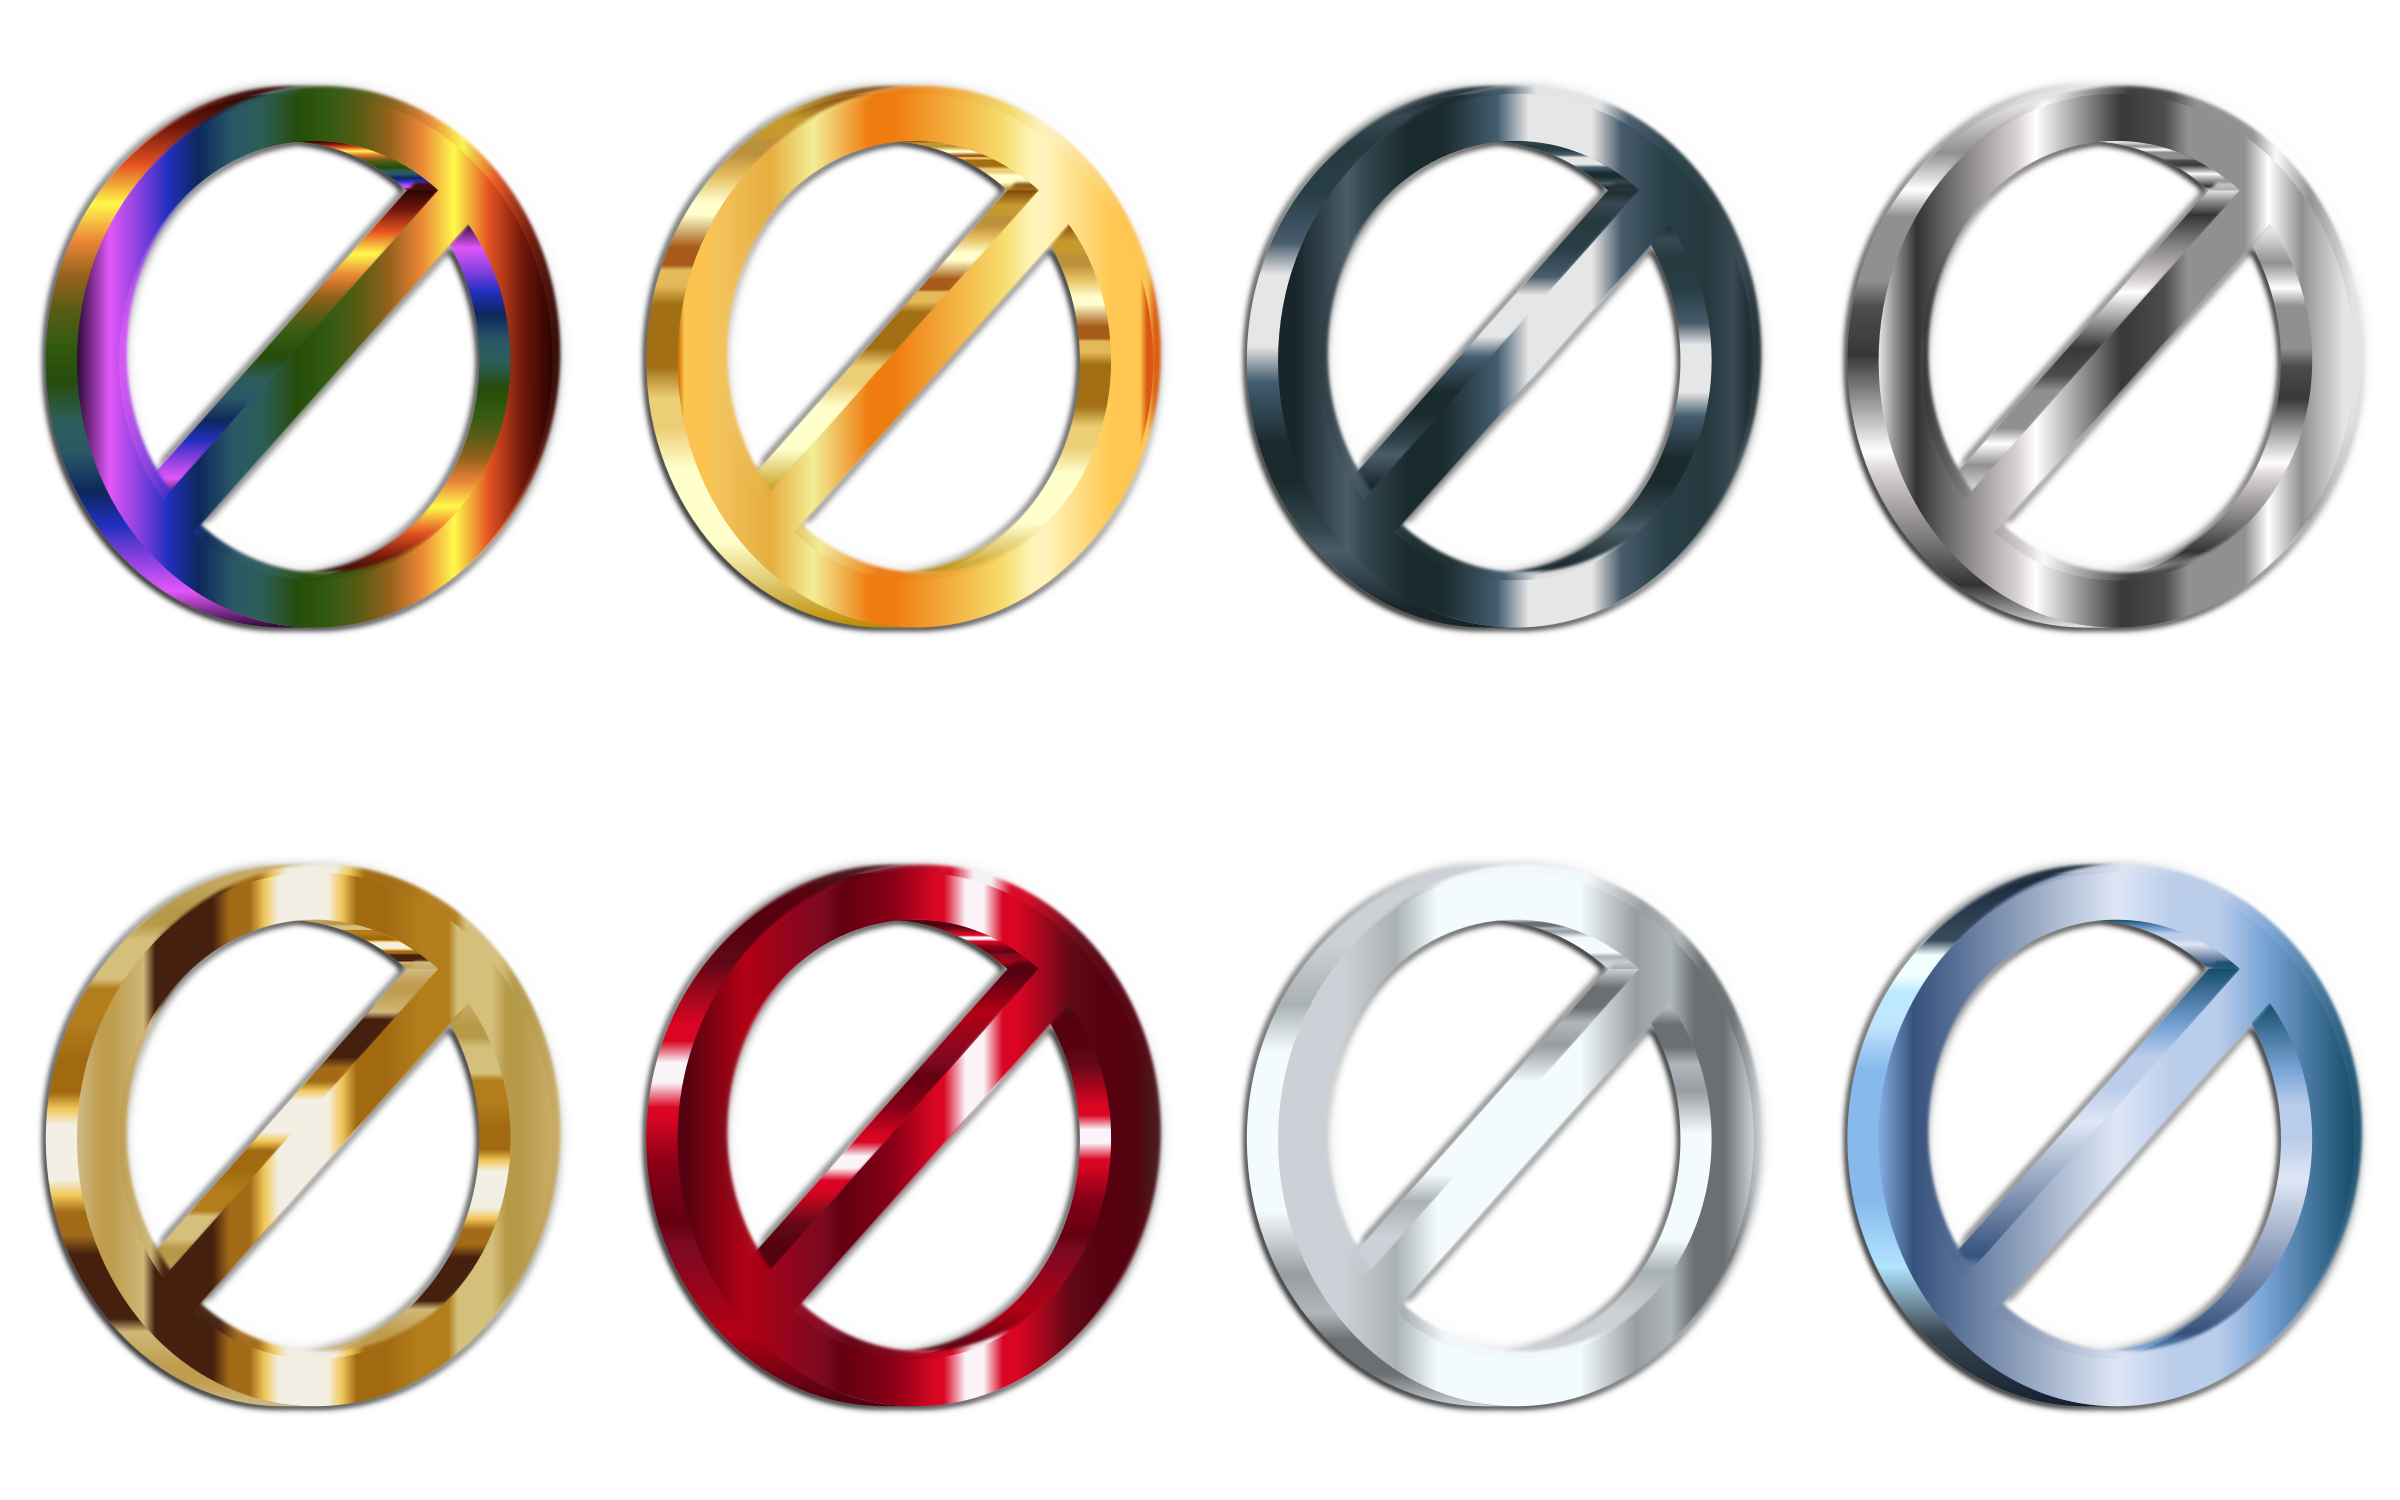 3D Shiny Metallic No Signs (Set Of 8) With Shading by GDJ